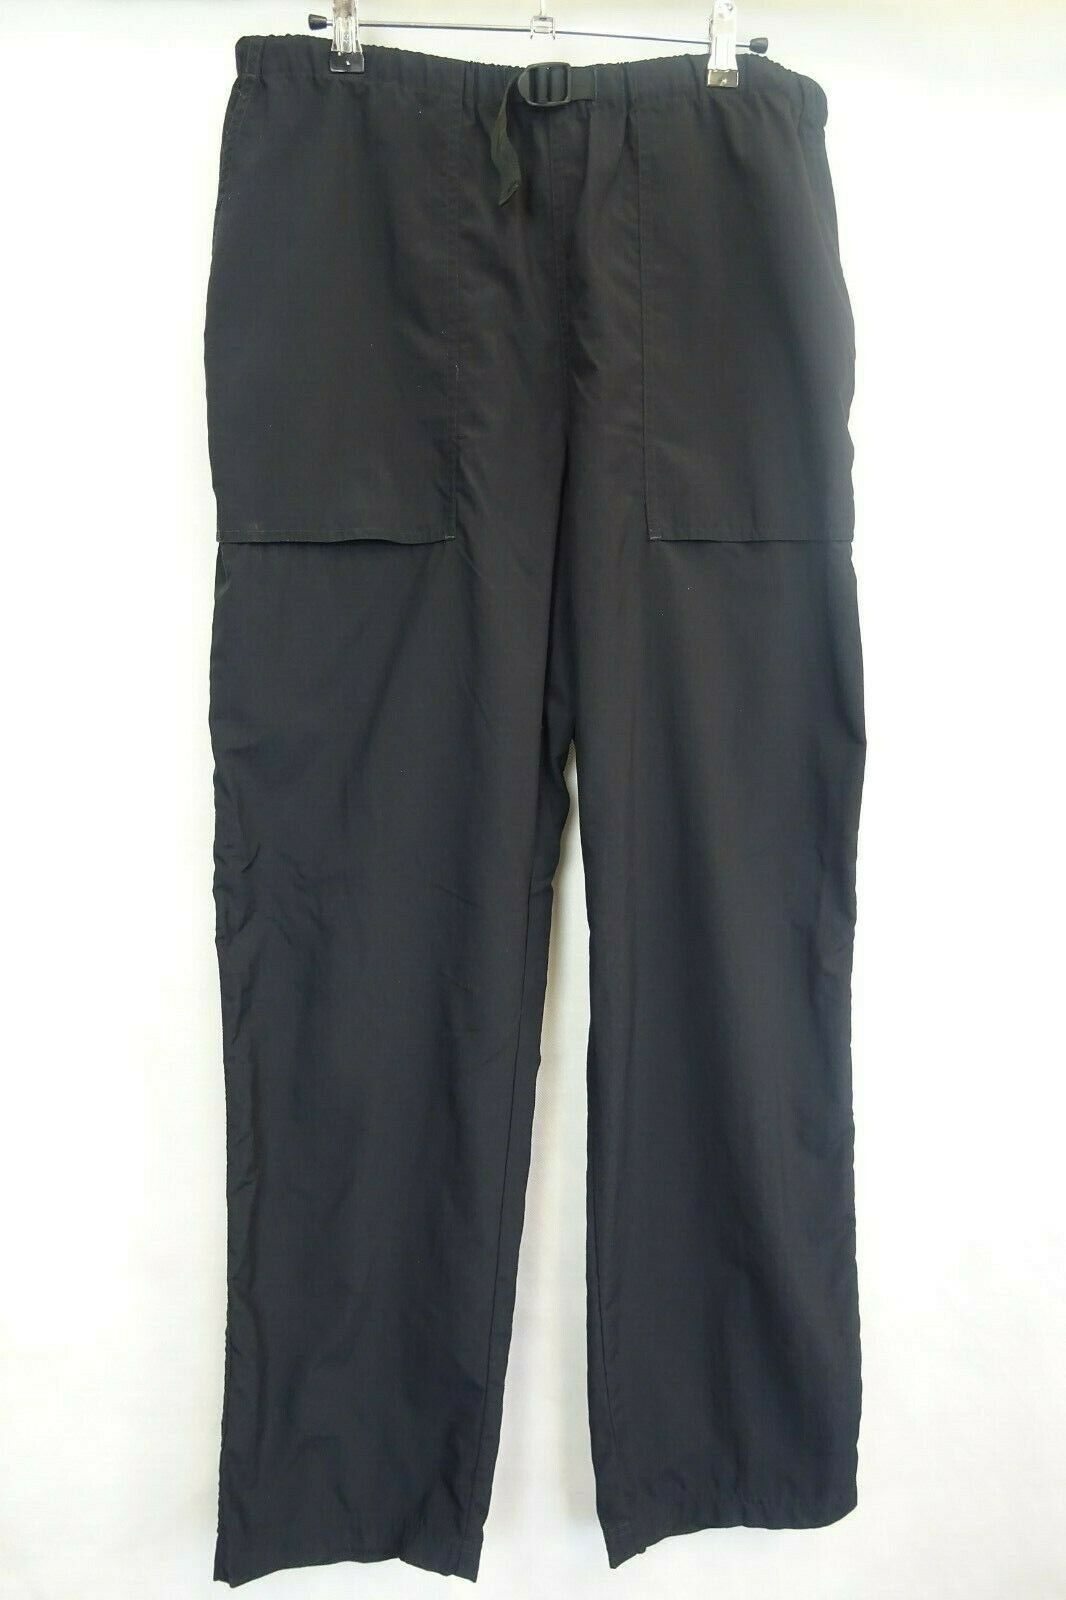 Women's Patagonia Casual Pants Trousers W30 L32